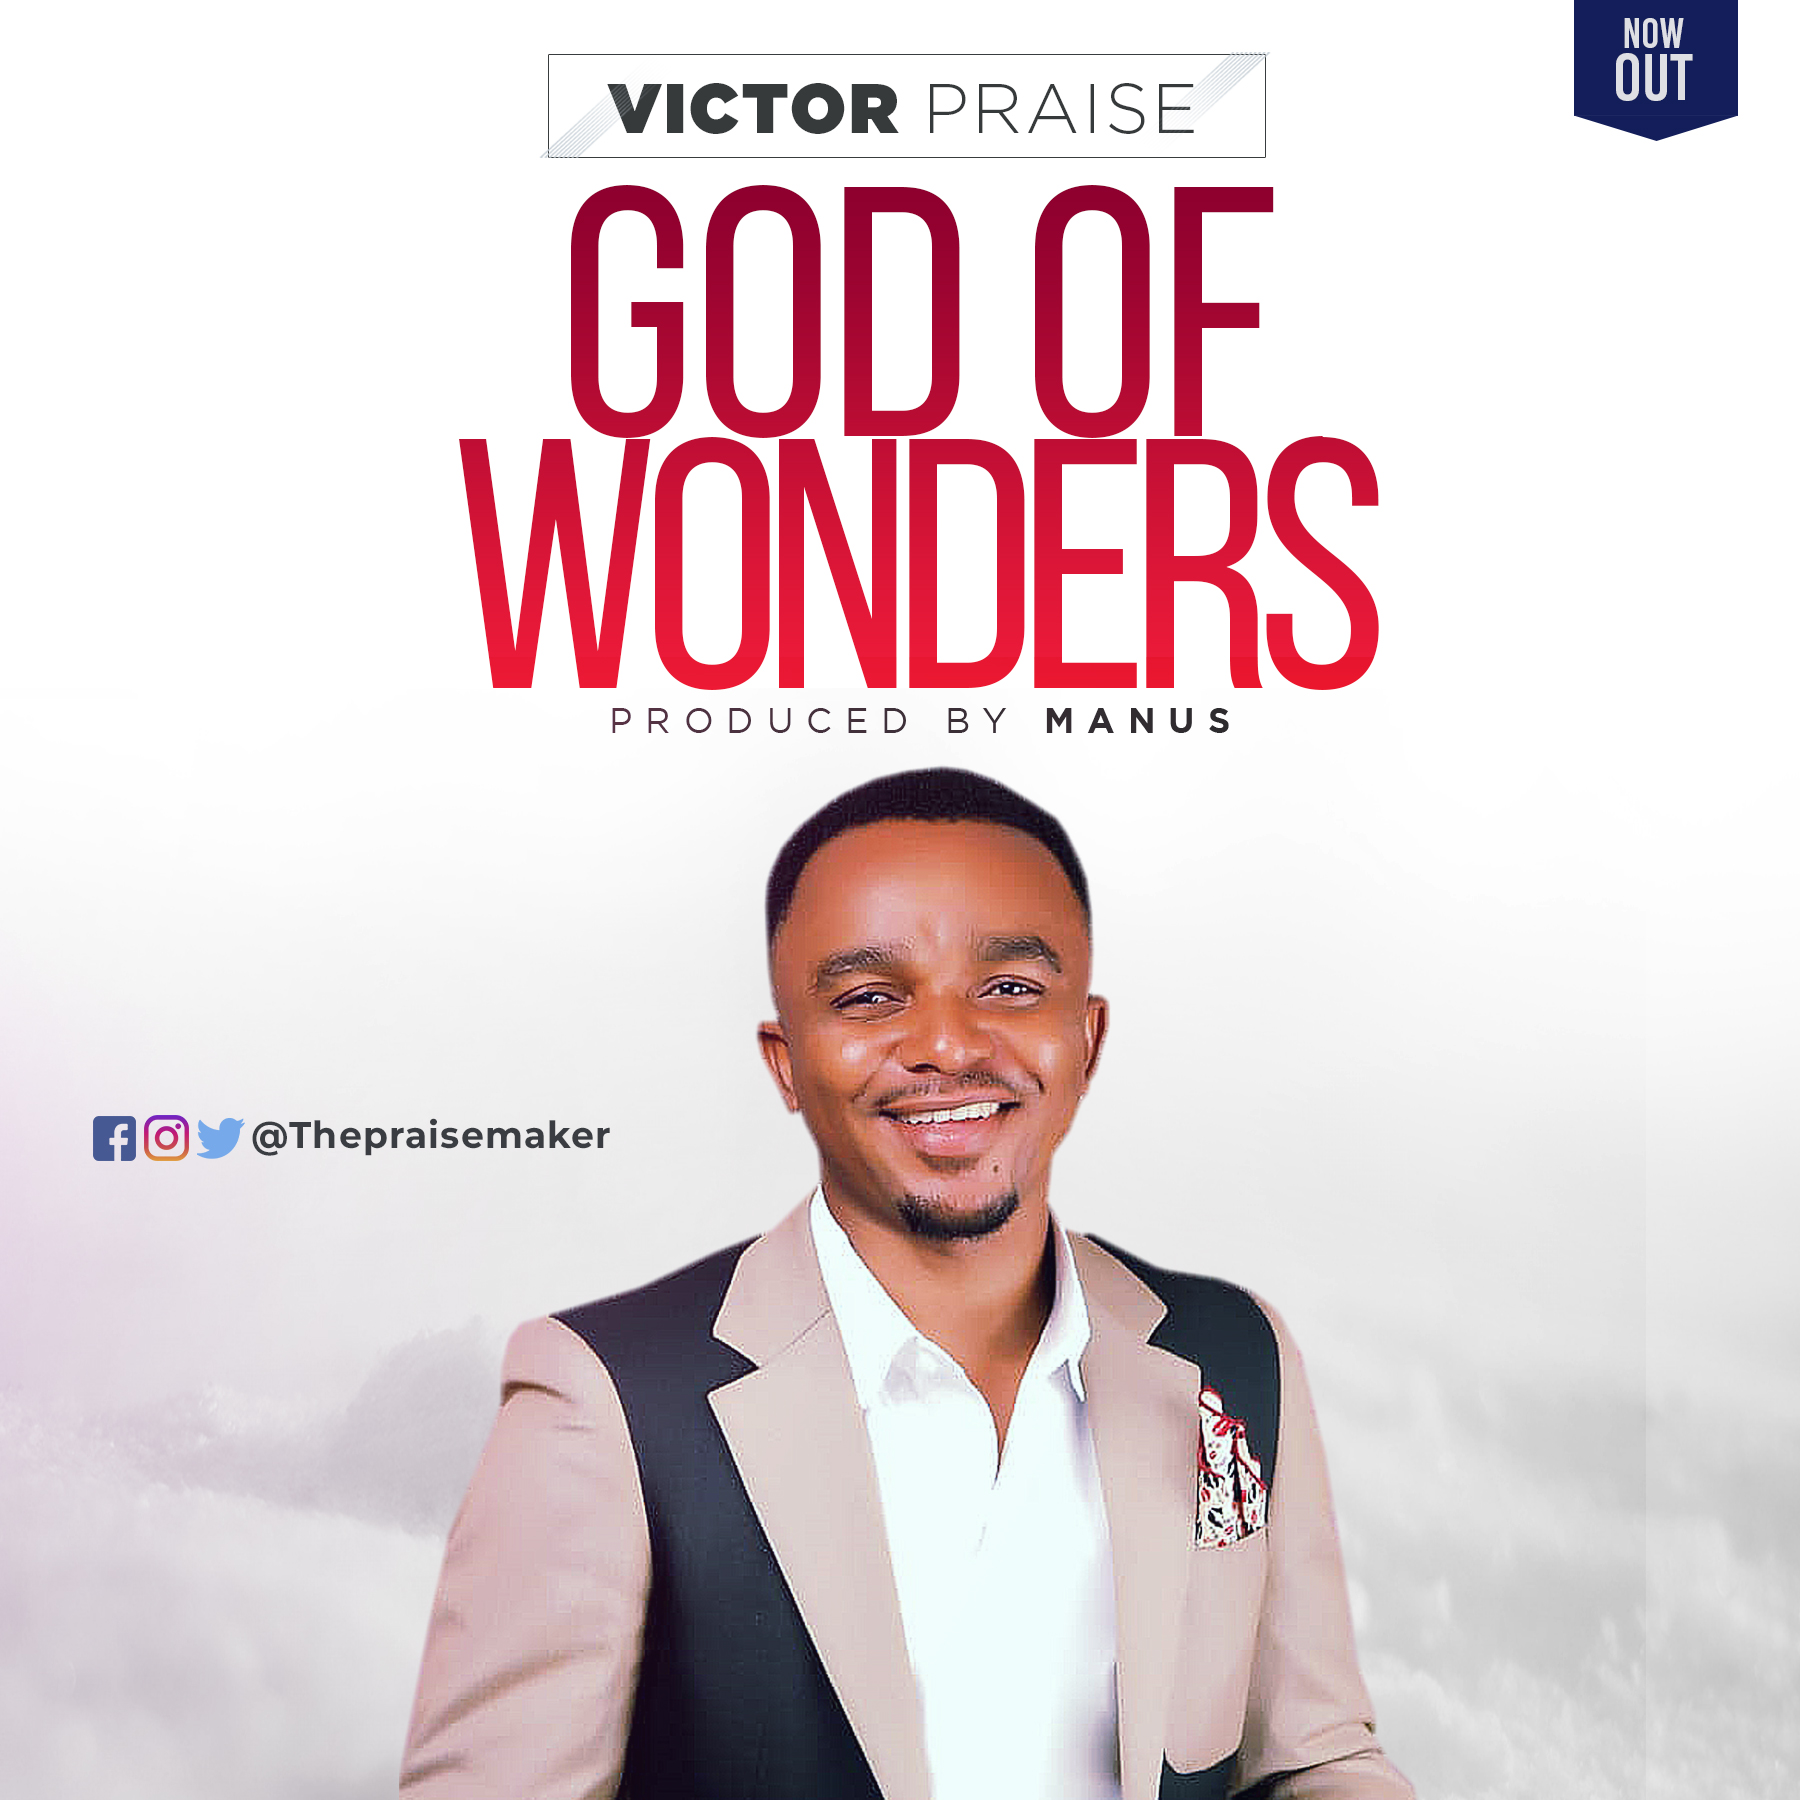 Victor Praise God Of Wonder